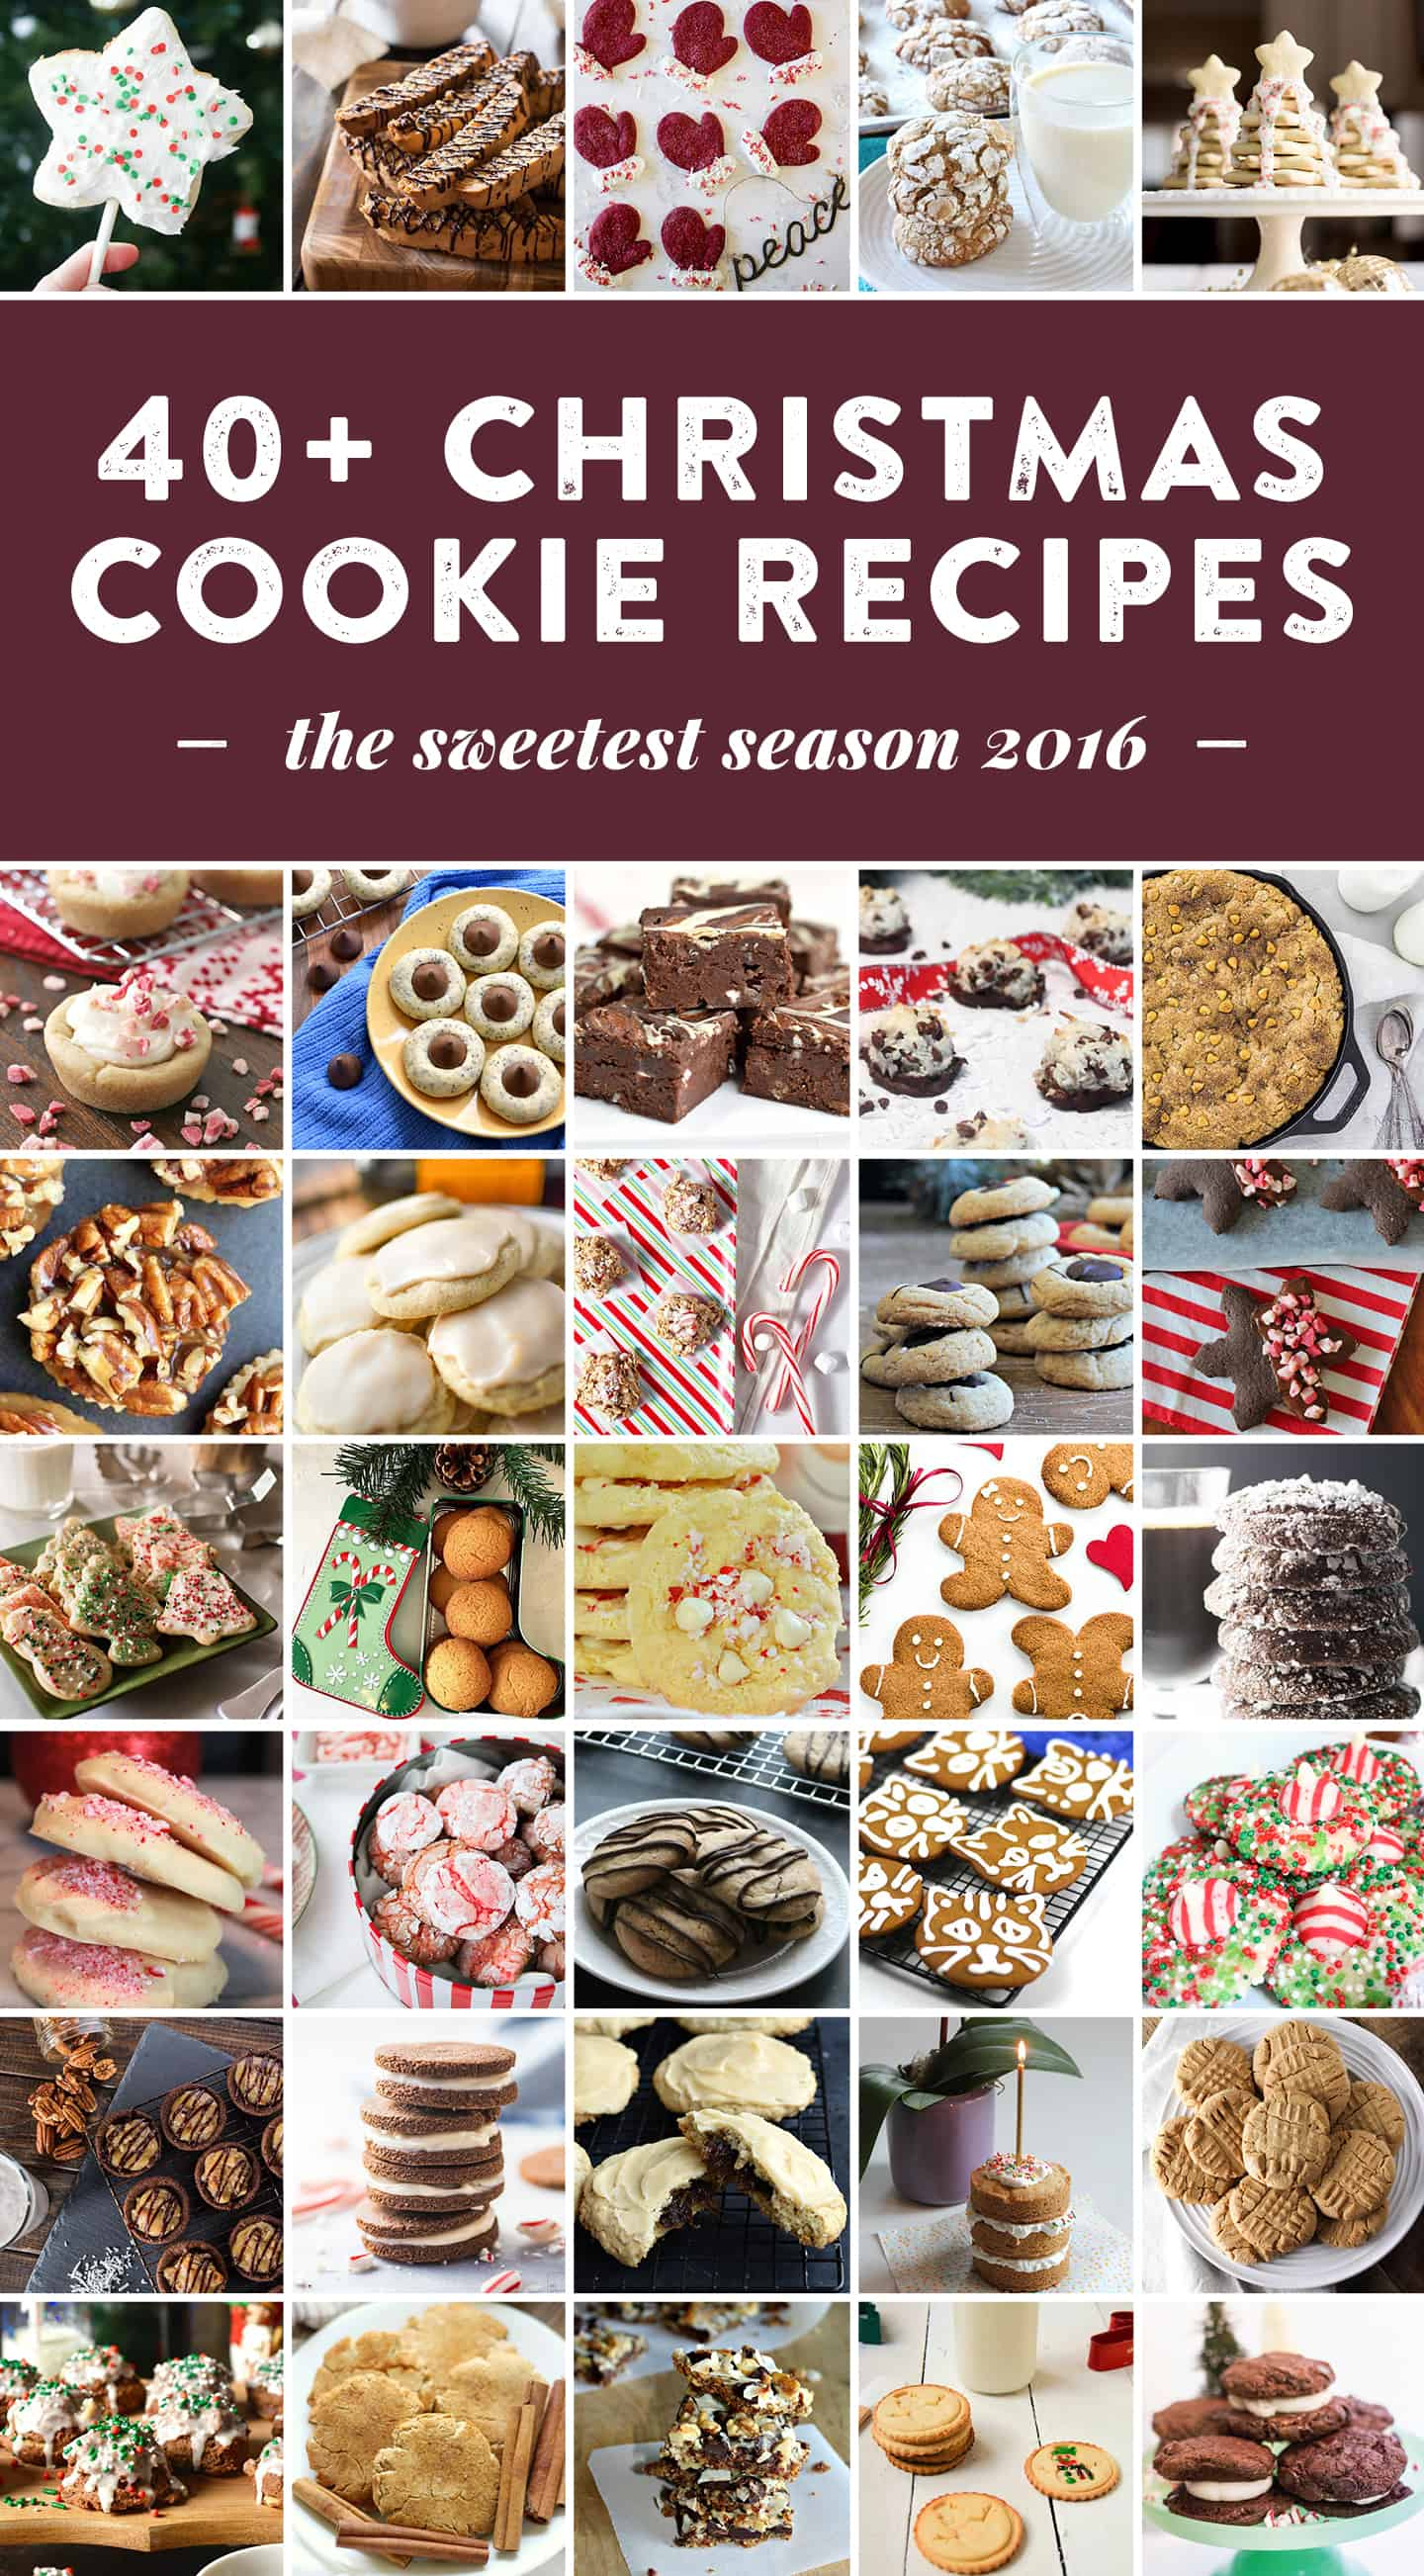 40+ Christmas Cookie Recipes to celebrate the holidays. There's something for everyone's tastes and special diets. #sweetestseasoncookies (via feastandwest.com)